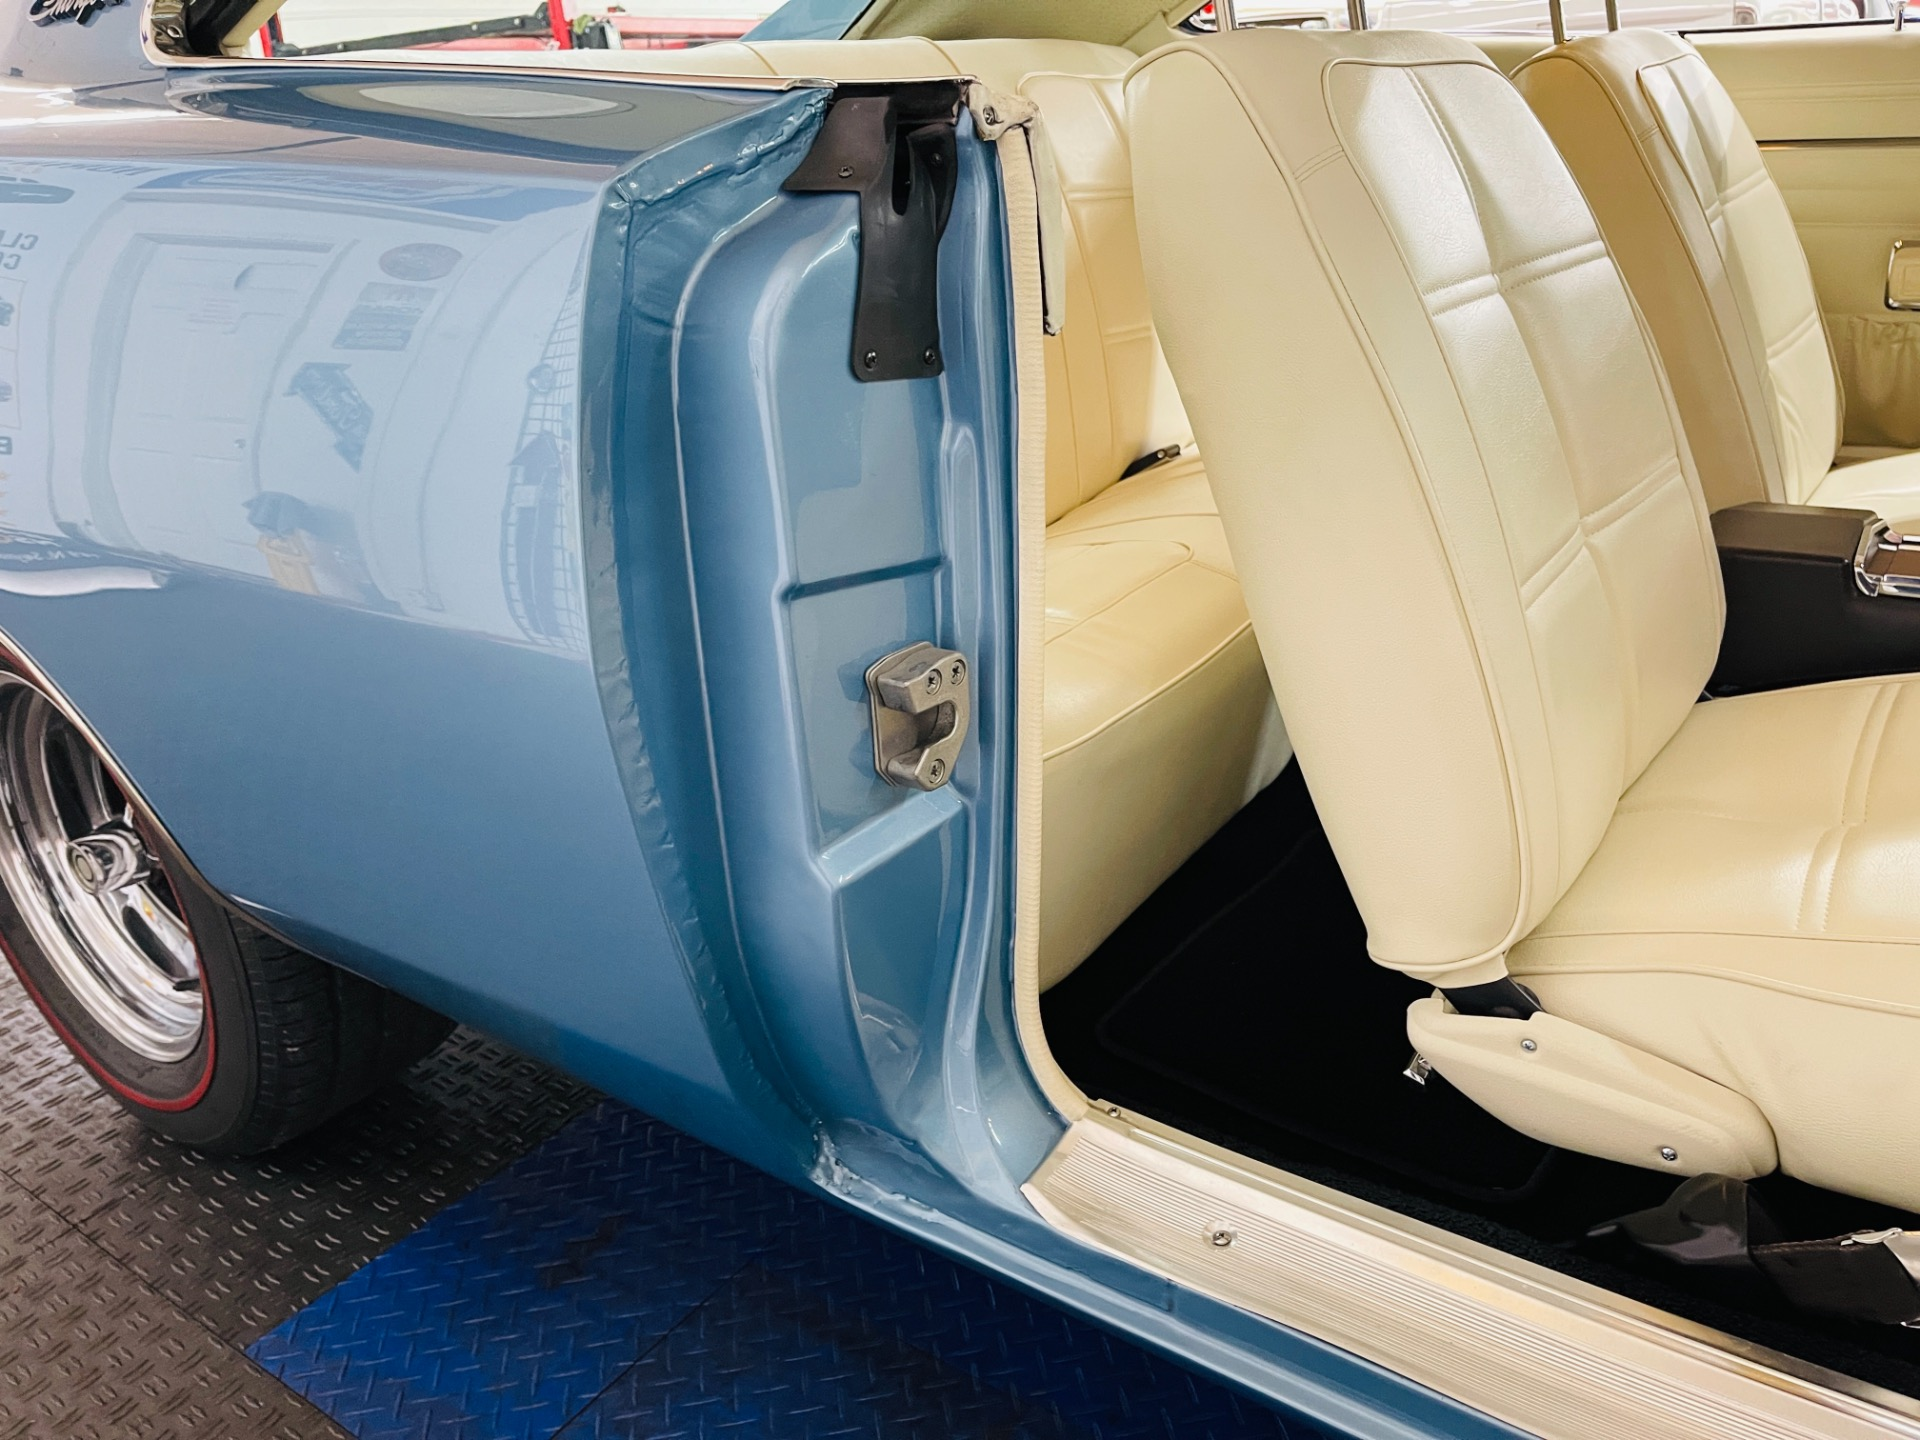 Used 1969 Dodge Charger - R/T - 440 MAGNUM - 4 SPEED TRANS - B3 BLUE - SEE VIDEO | Mundelein, IL